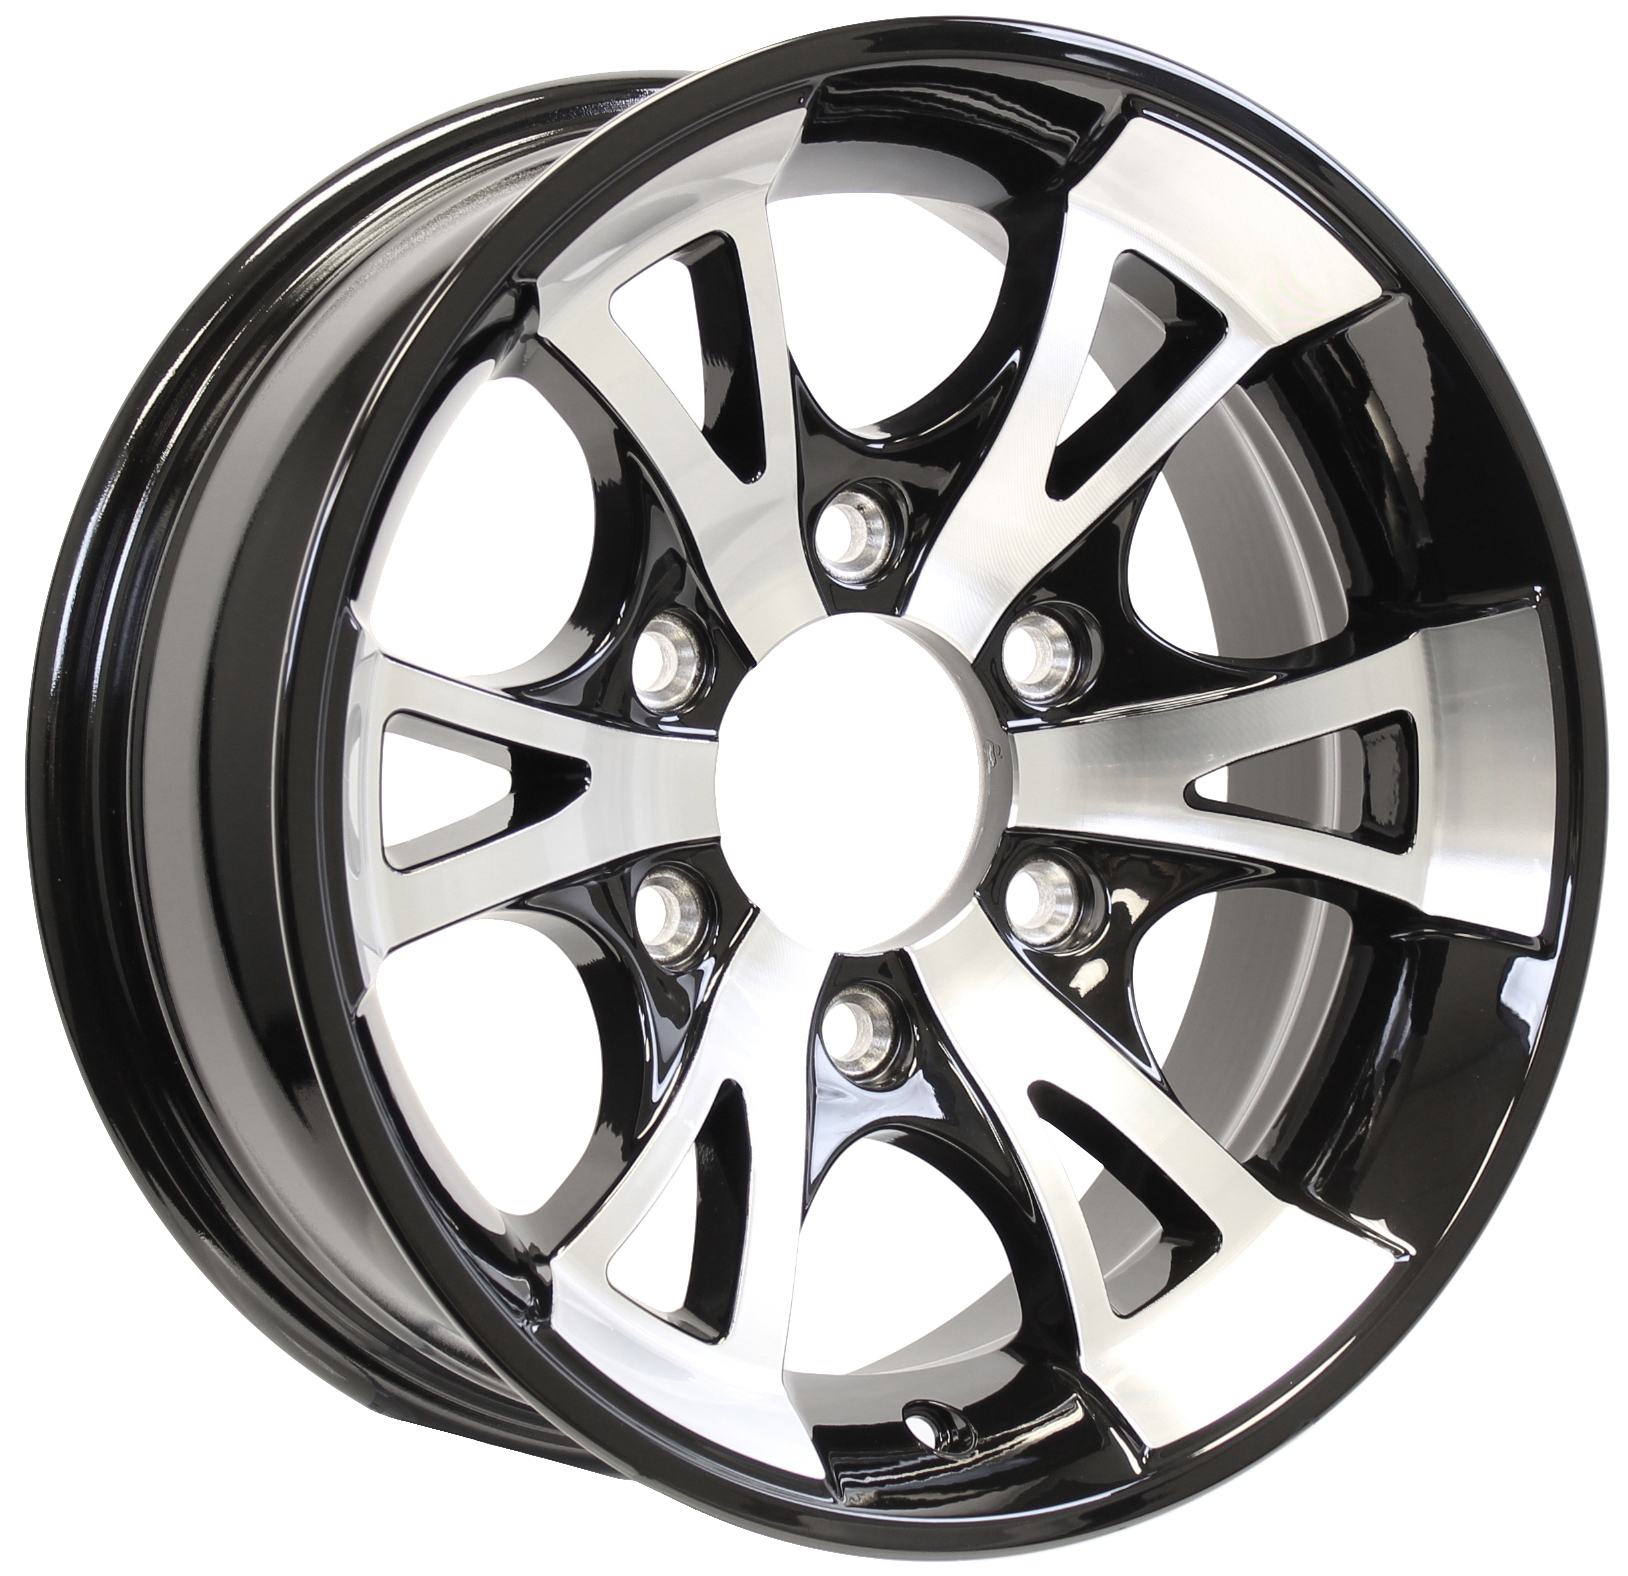 A1411- 15x6 6-Lug Black Aluminum Trailer Wheel Image